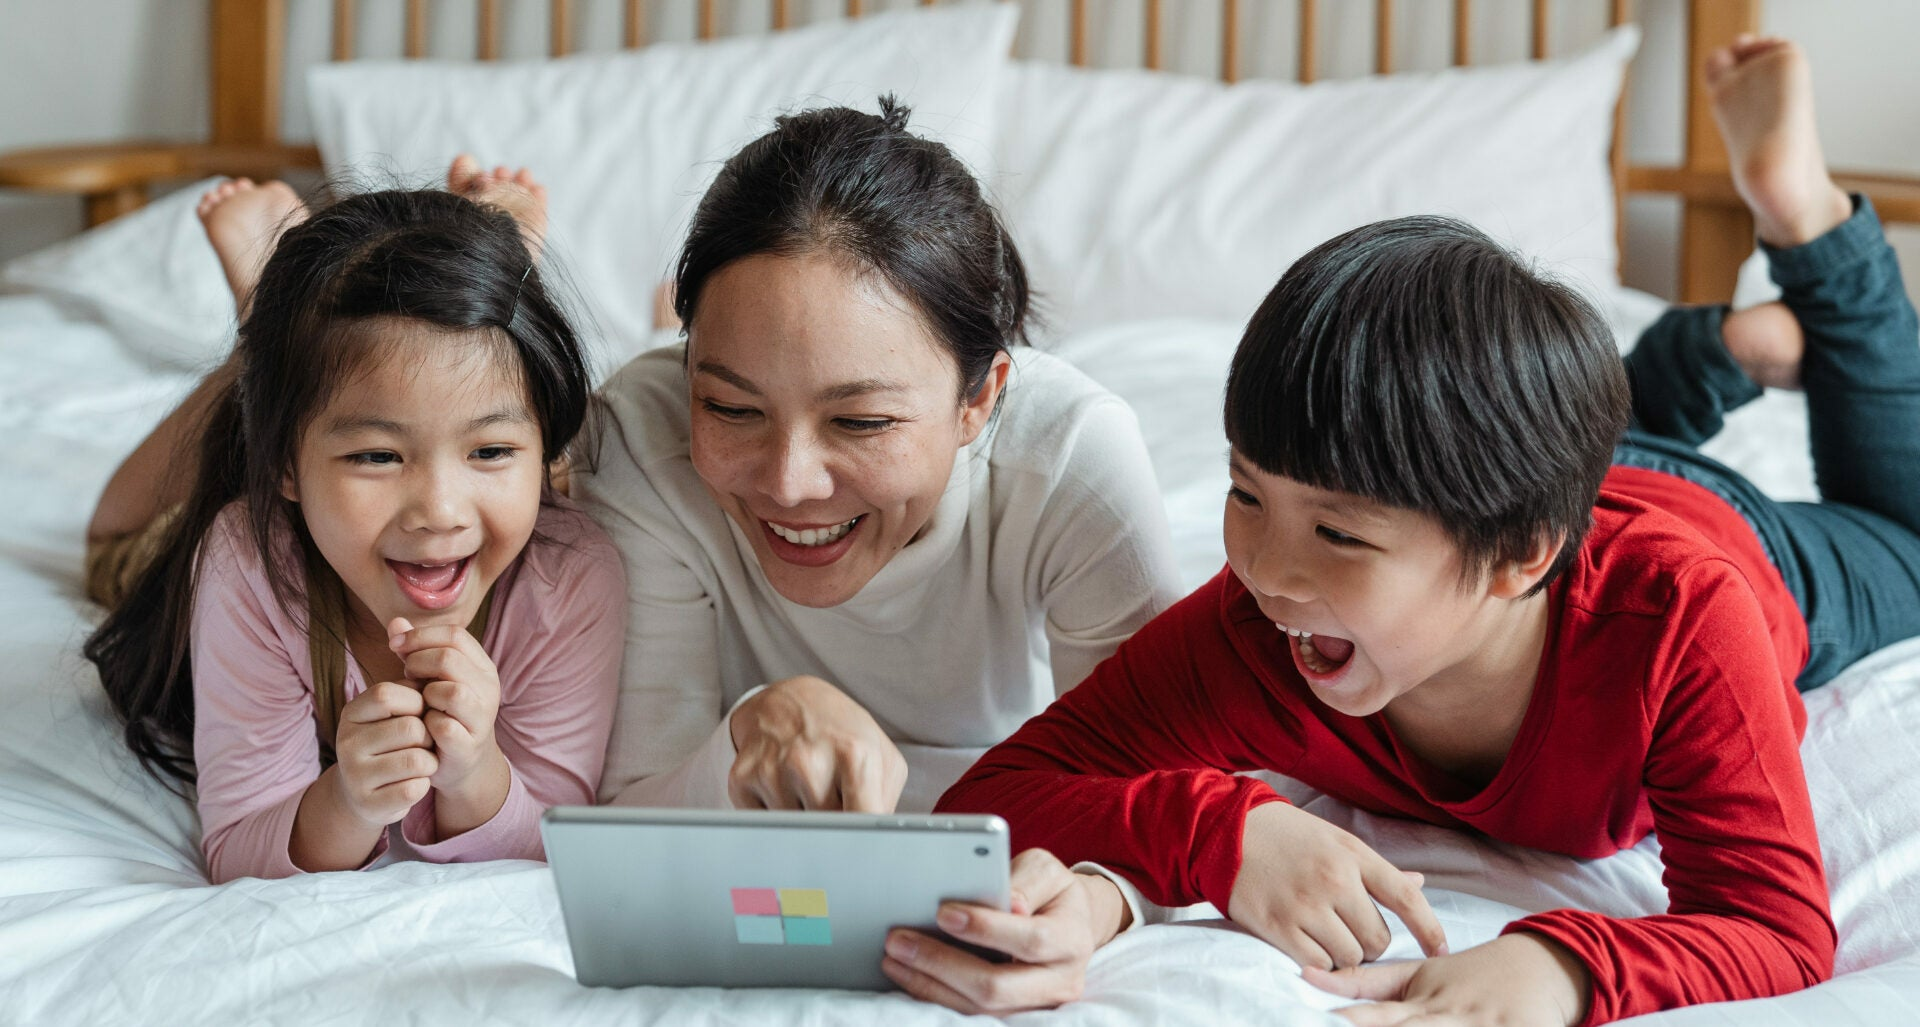 A smiling mother lays on her bed with two smiling young children. They are looking at a tablet together.